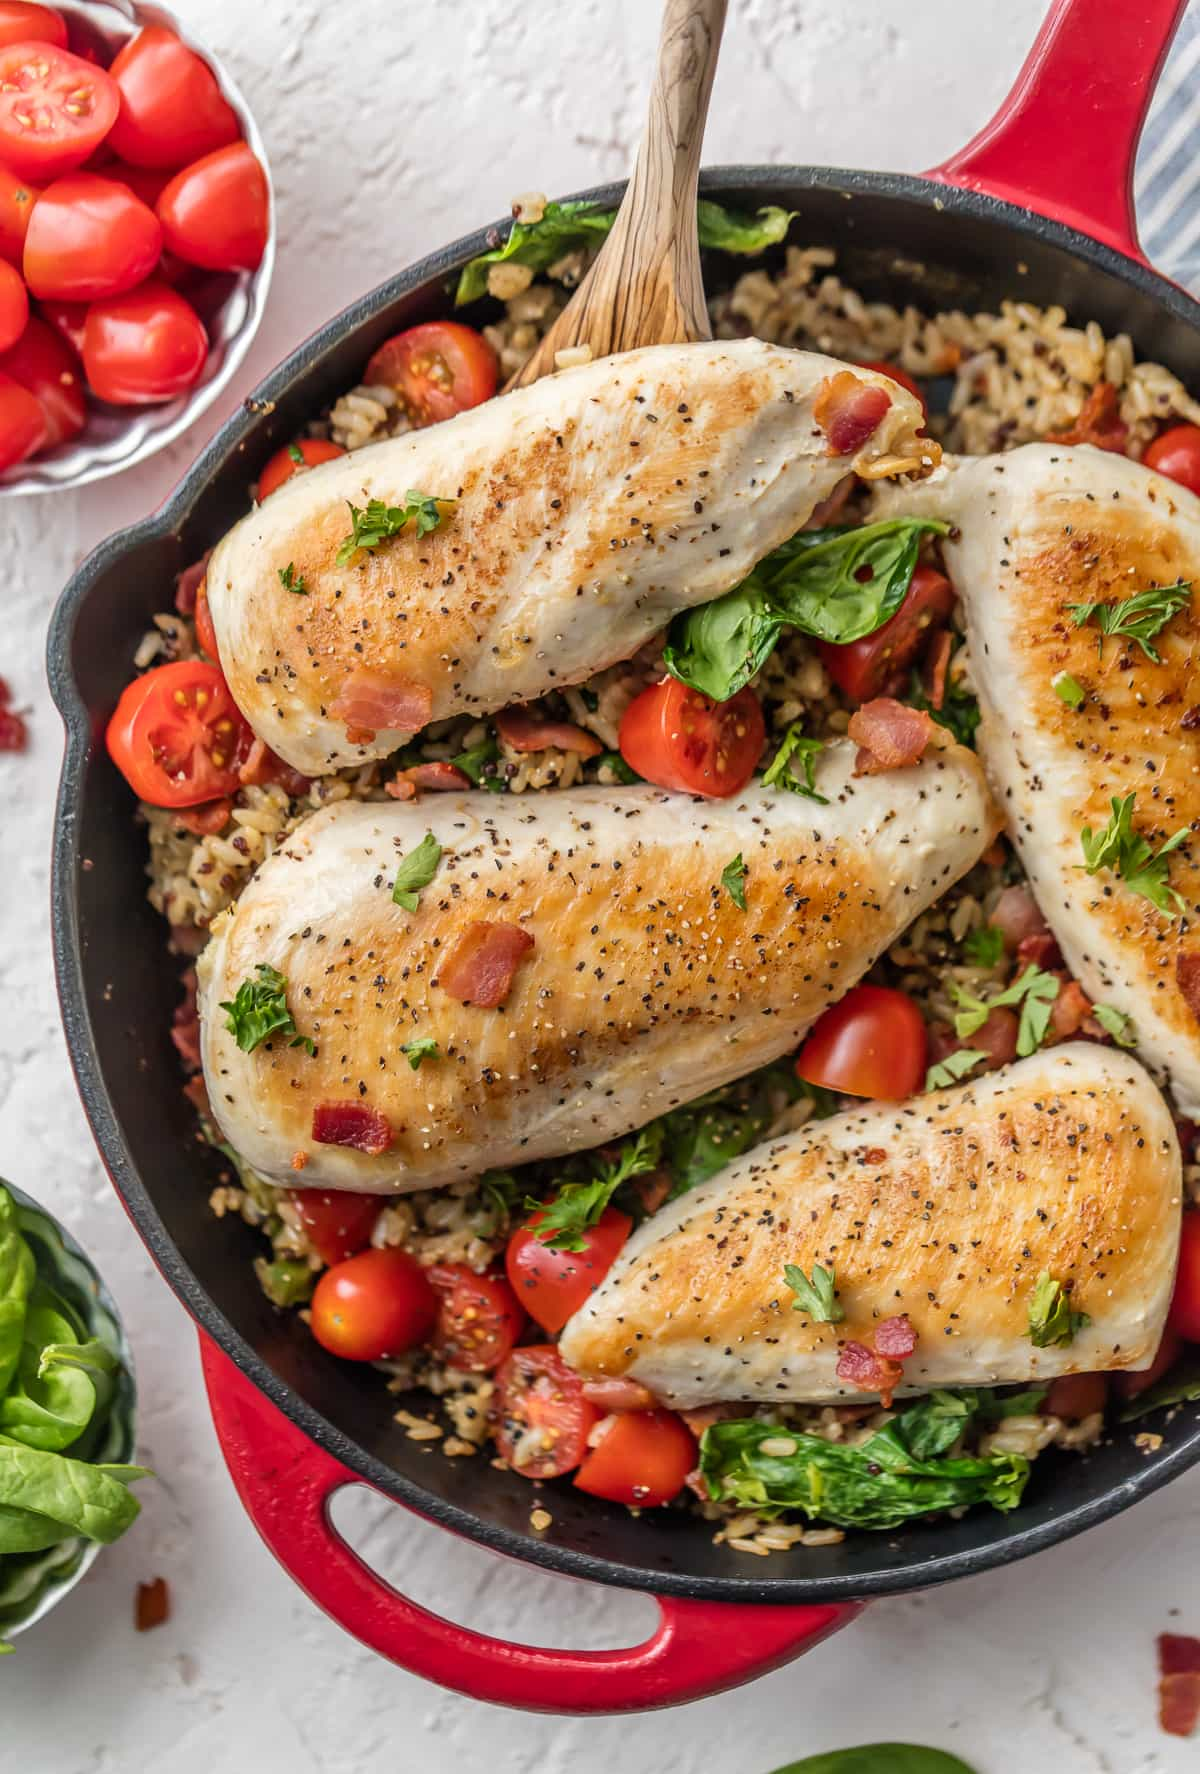 Chicken and brown rice recipe with spinach, tomato, and bacon